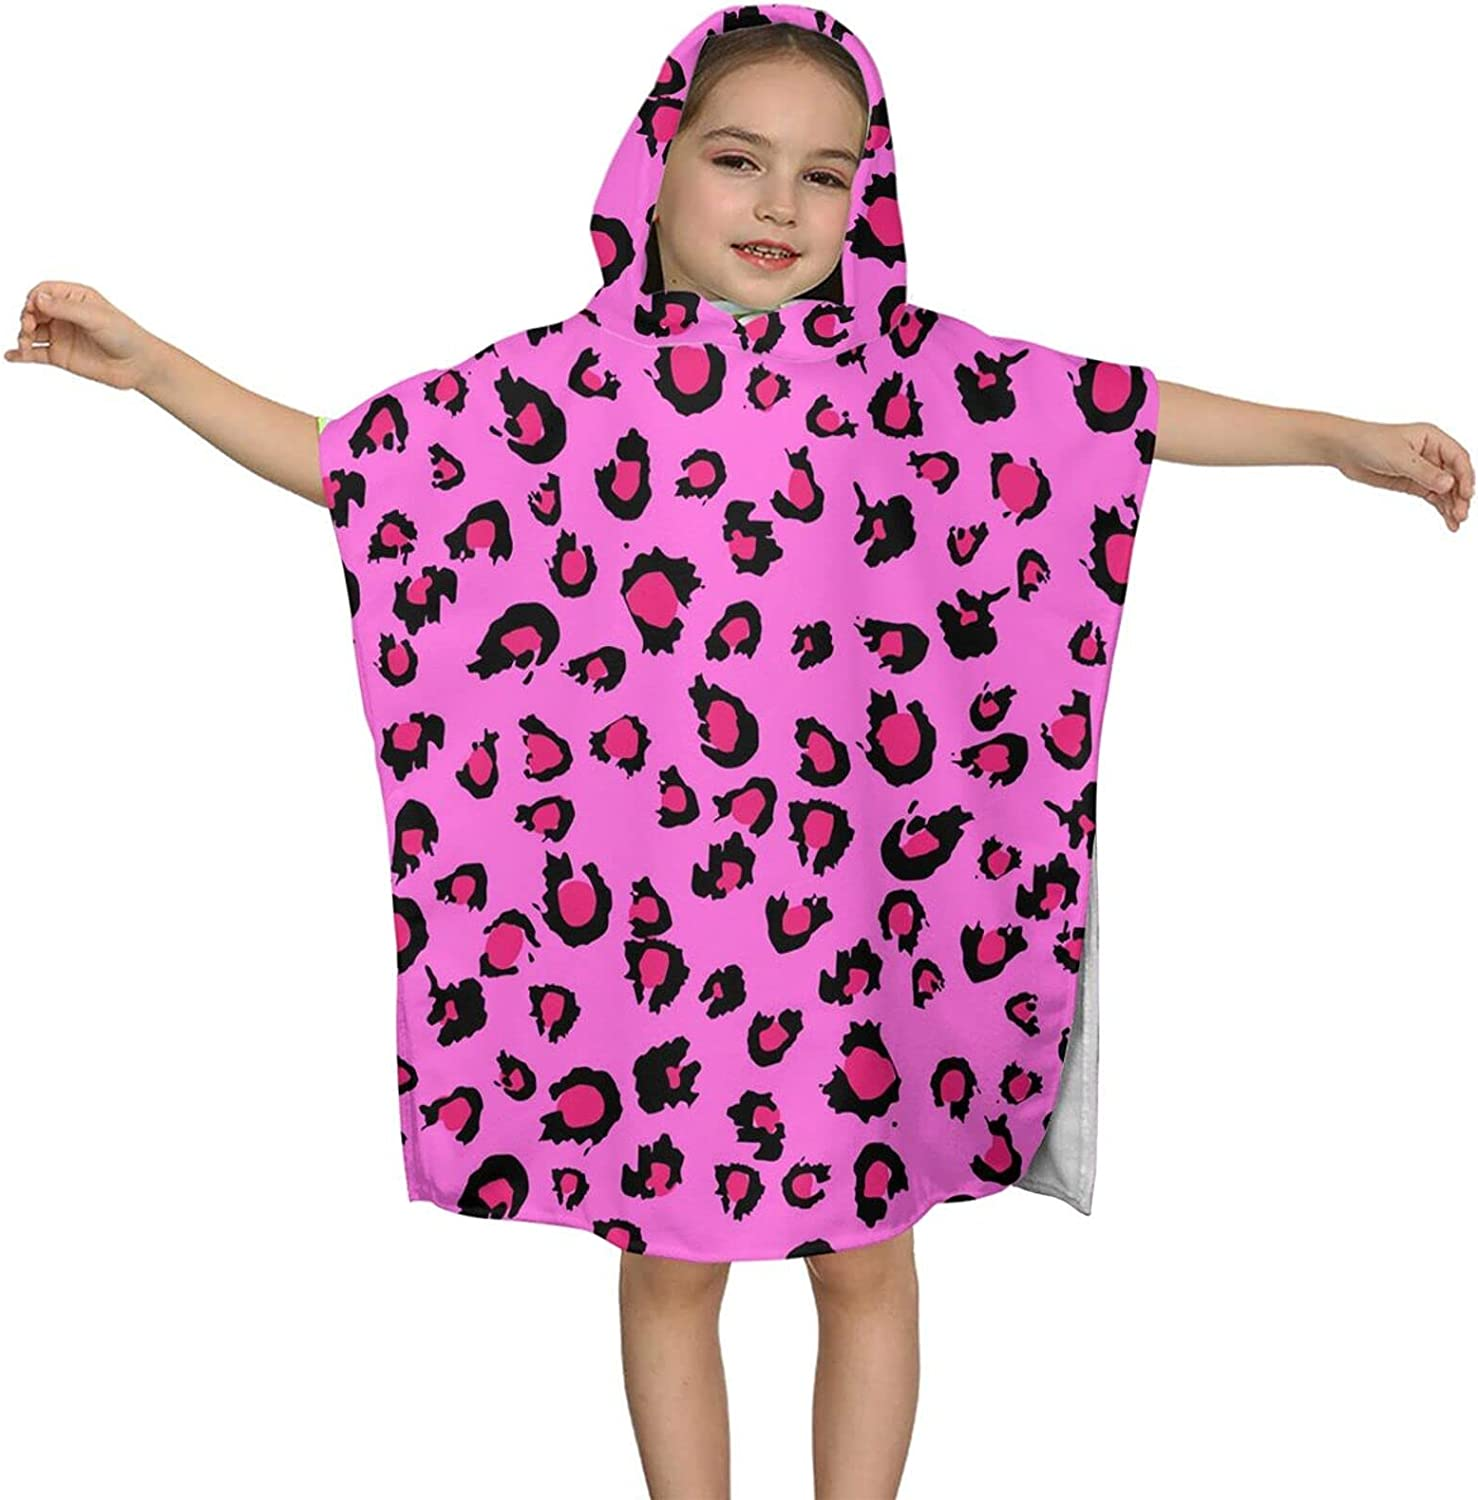 Hooded 67% OFF of fixed price Bath Towel Pink Leopard Wrap Kids NEW Soft Print